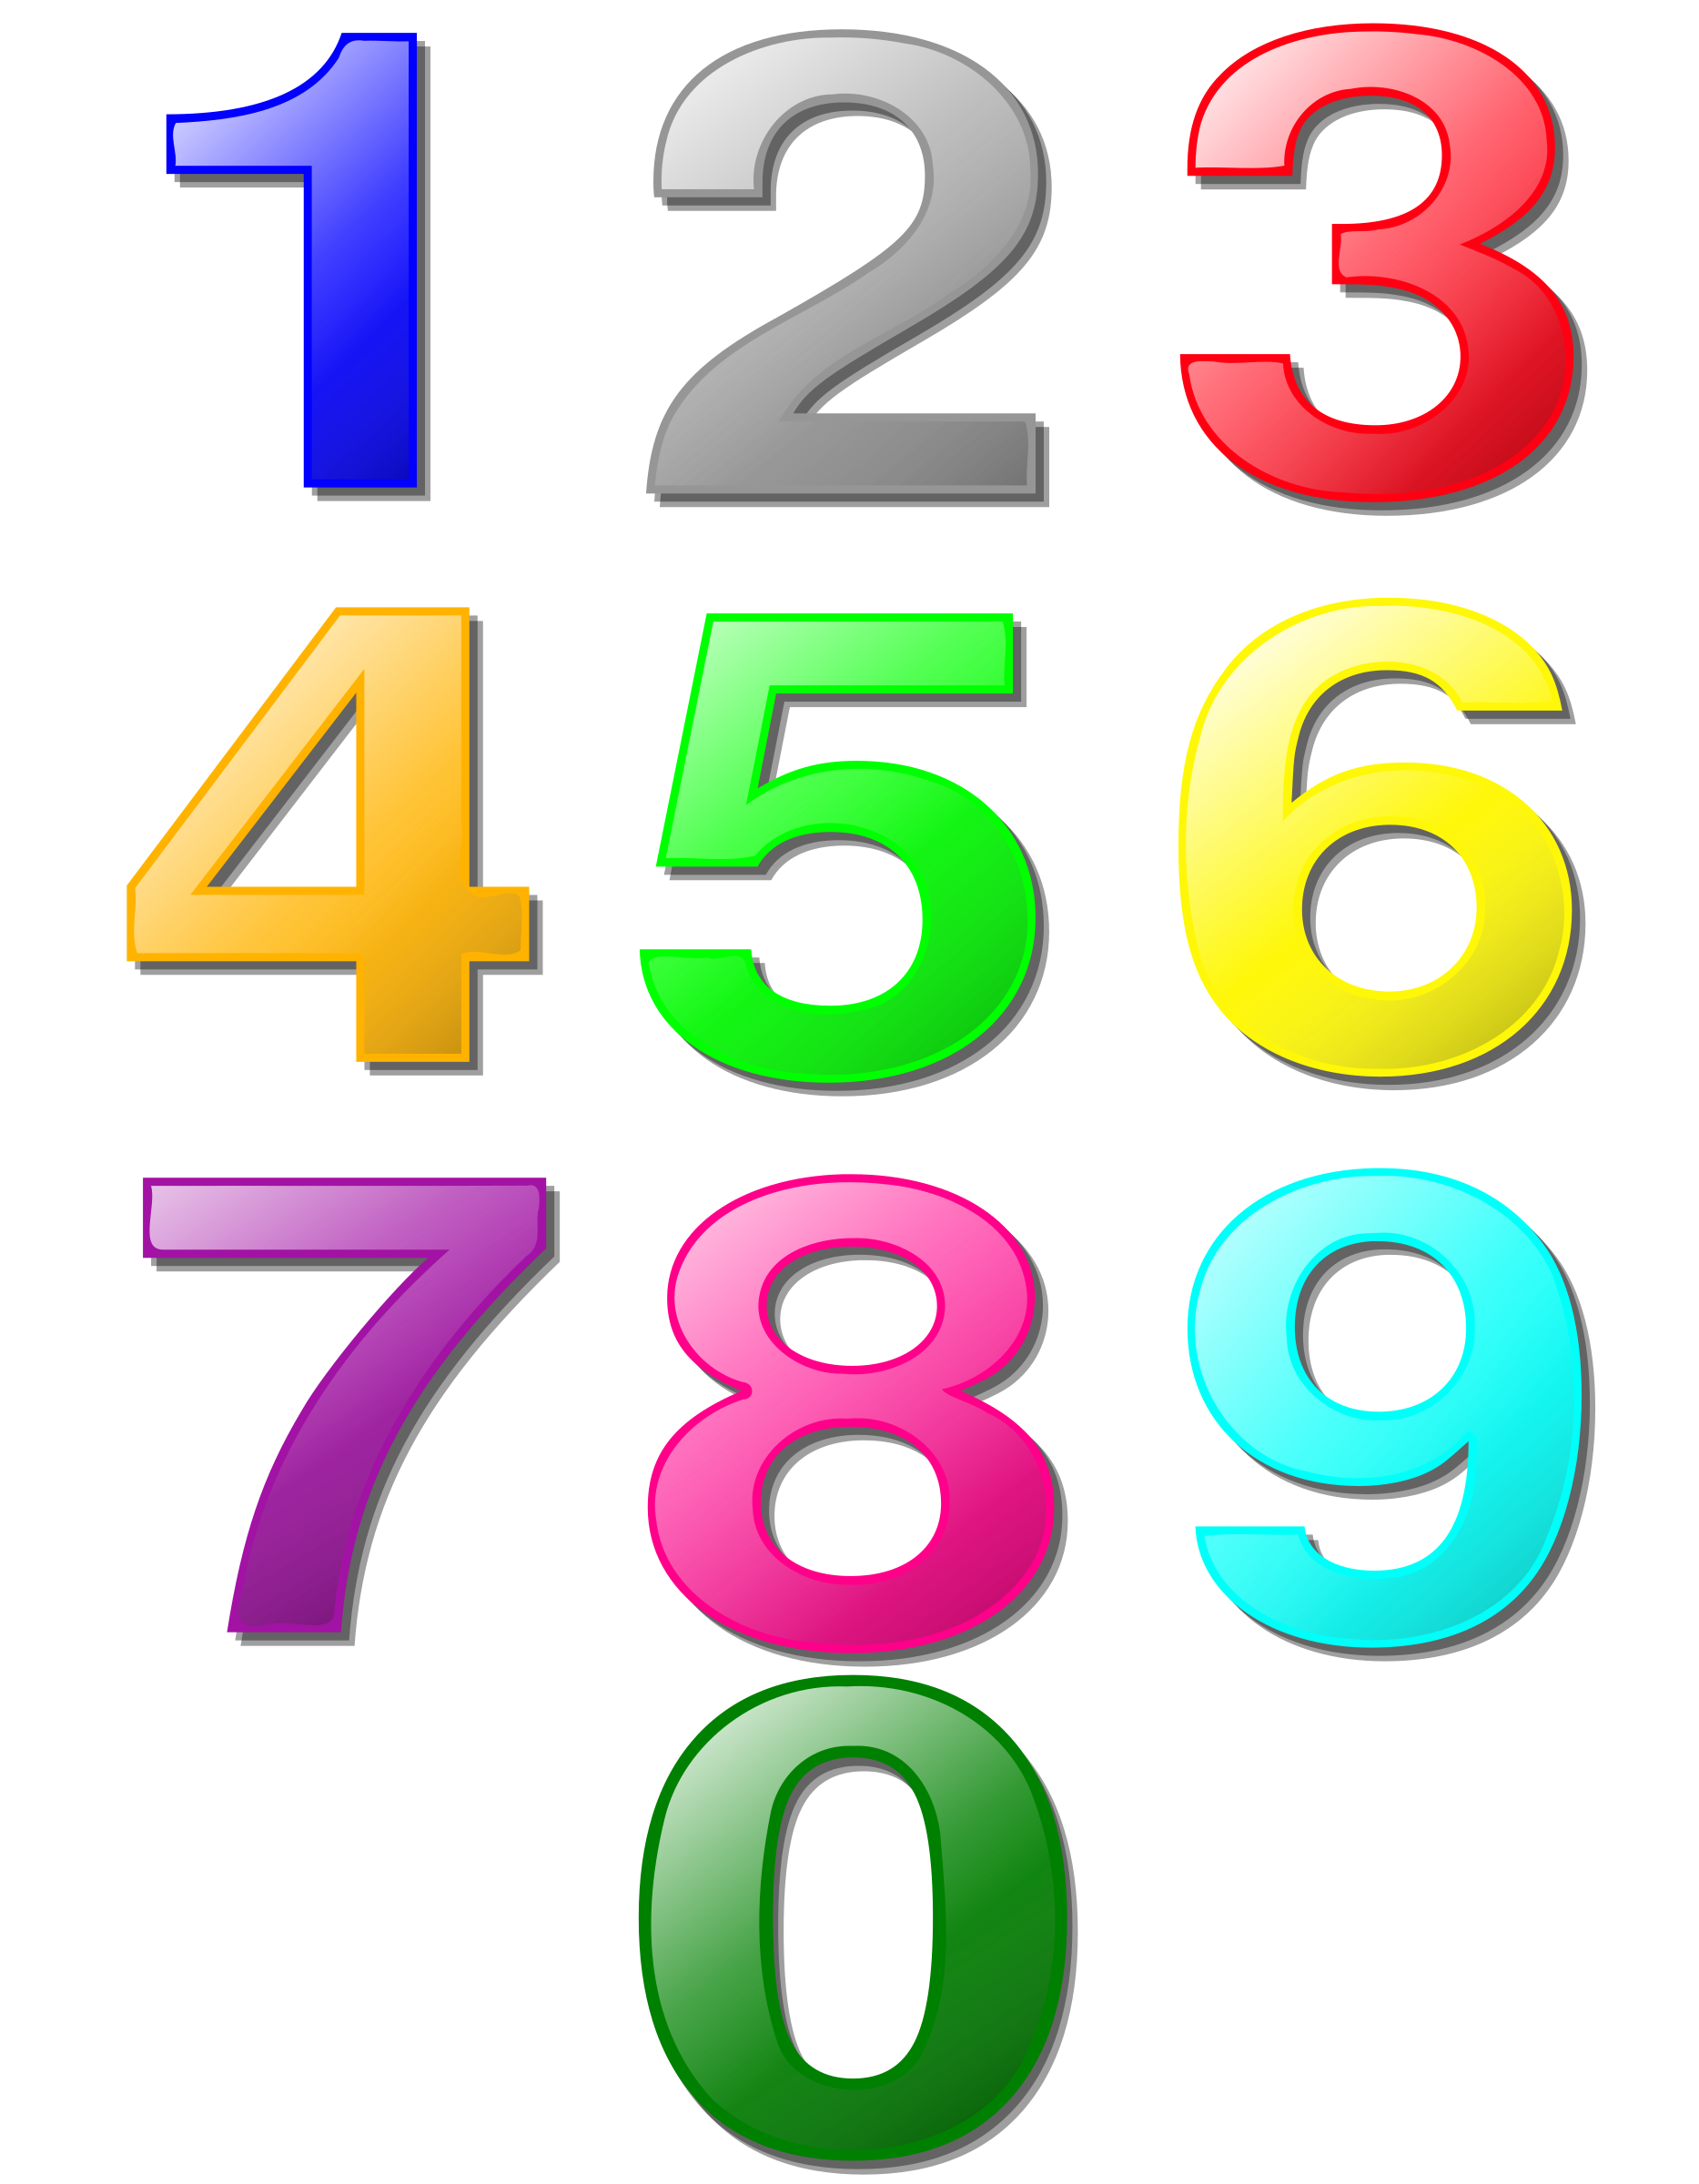 Clipart of numbers 1 10 picture transparent download Clipart - Game marbles - digits picture transparent download